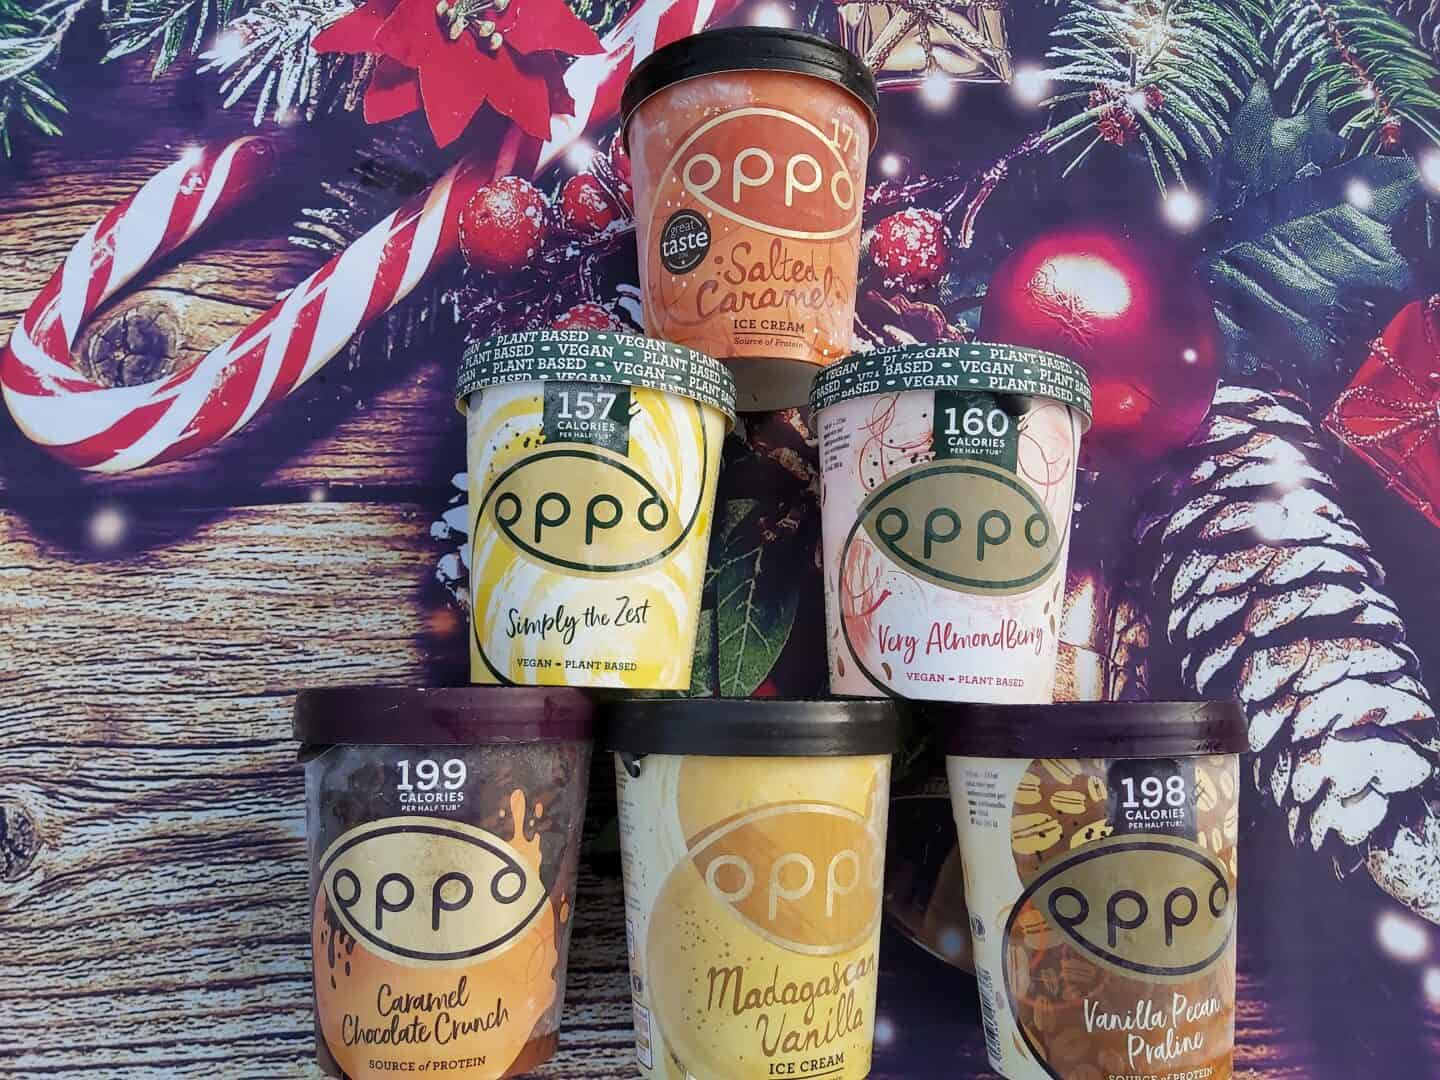 6 tubs of Oppo ice cream against a Christmassy background